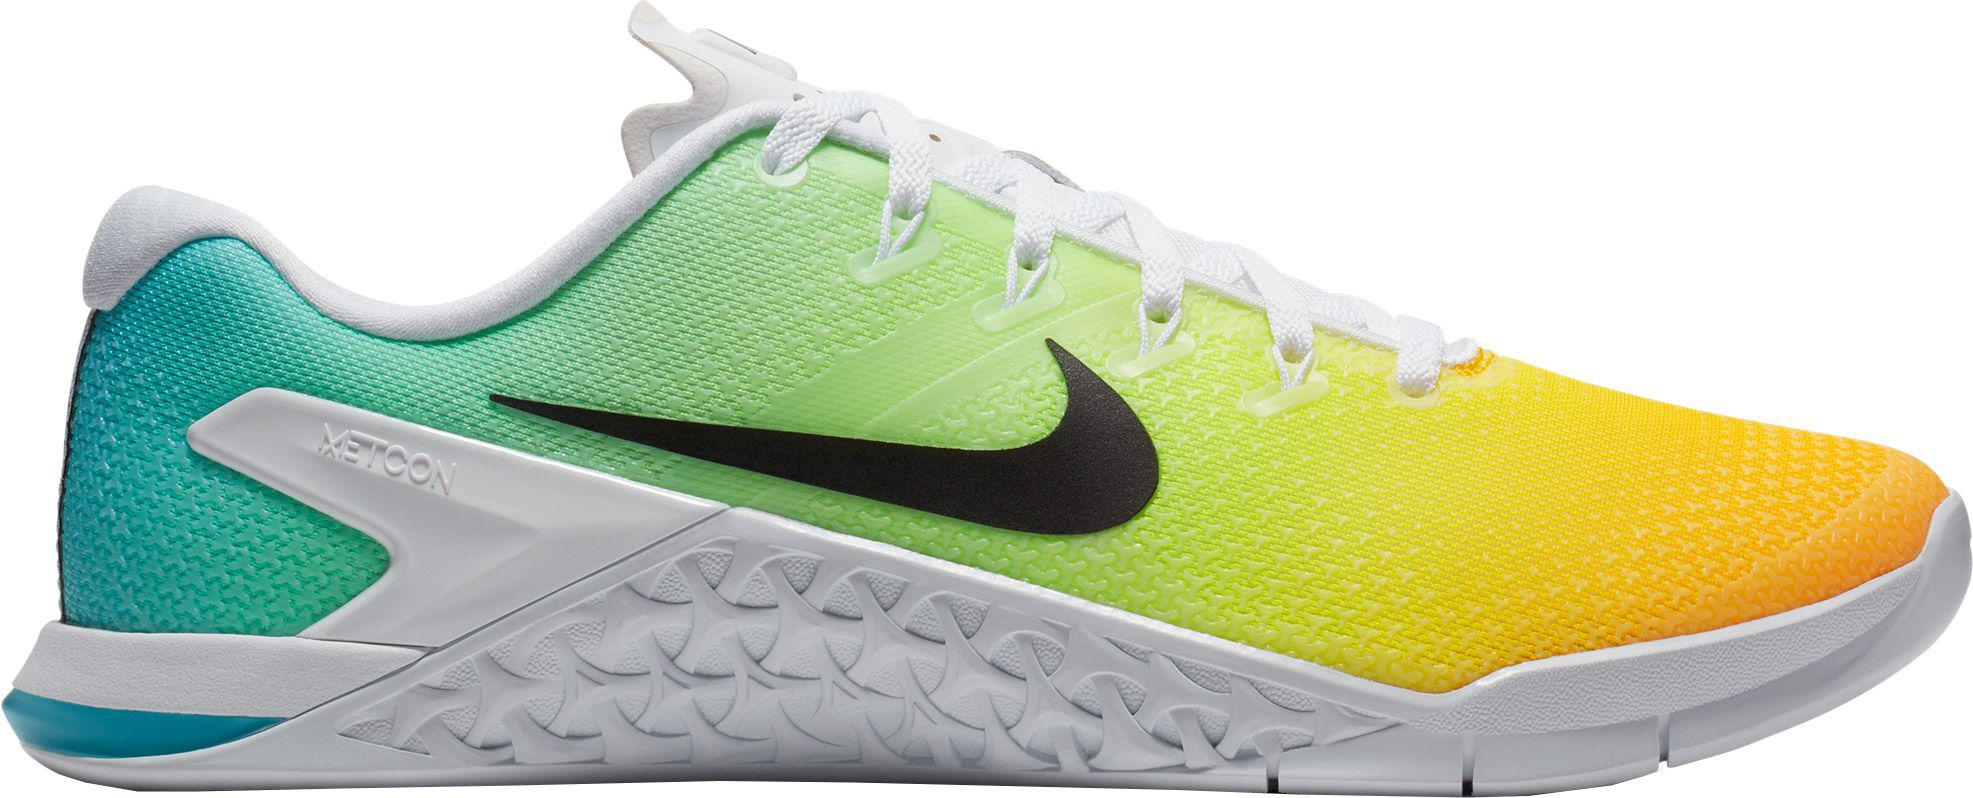 0e371c5306a3bd Nike - Multicolor Metcon 4 Training Shoes for Men - Lyst